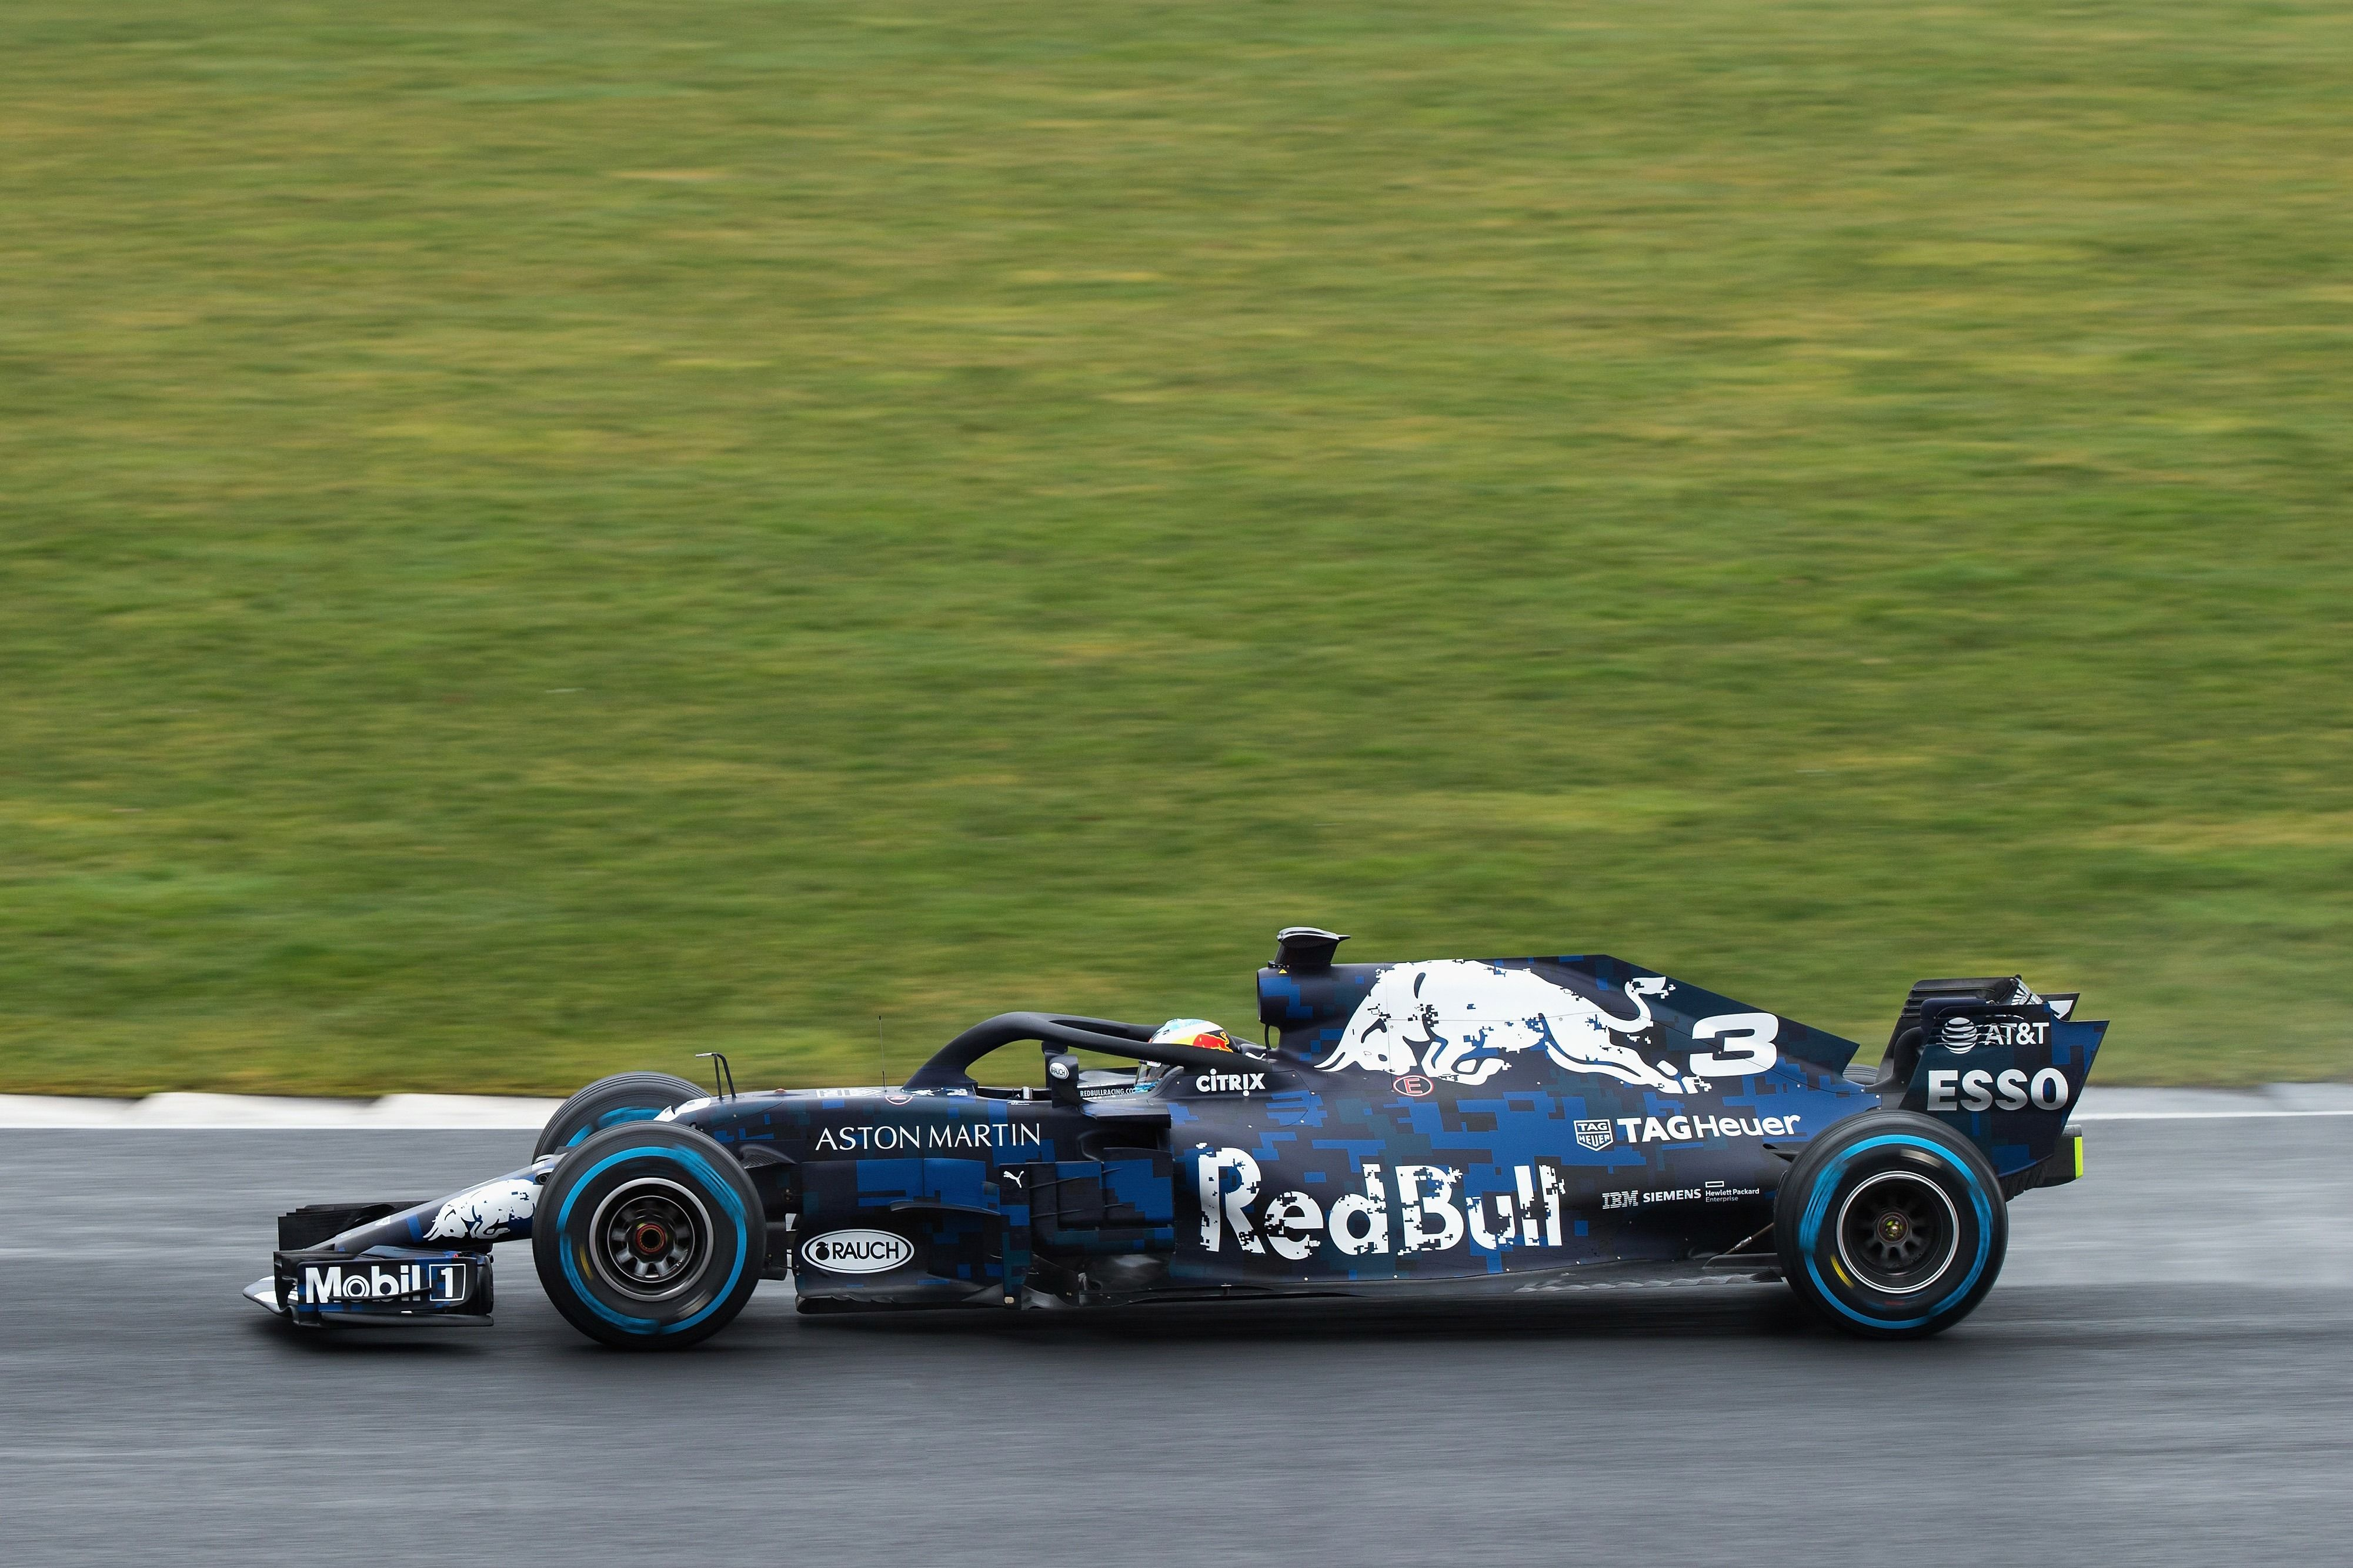 94 Red Bull Racing Rb14 Wallpapers On Wallpapersafari: Red Bull Racing RB14 Wallpapers